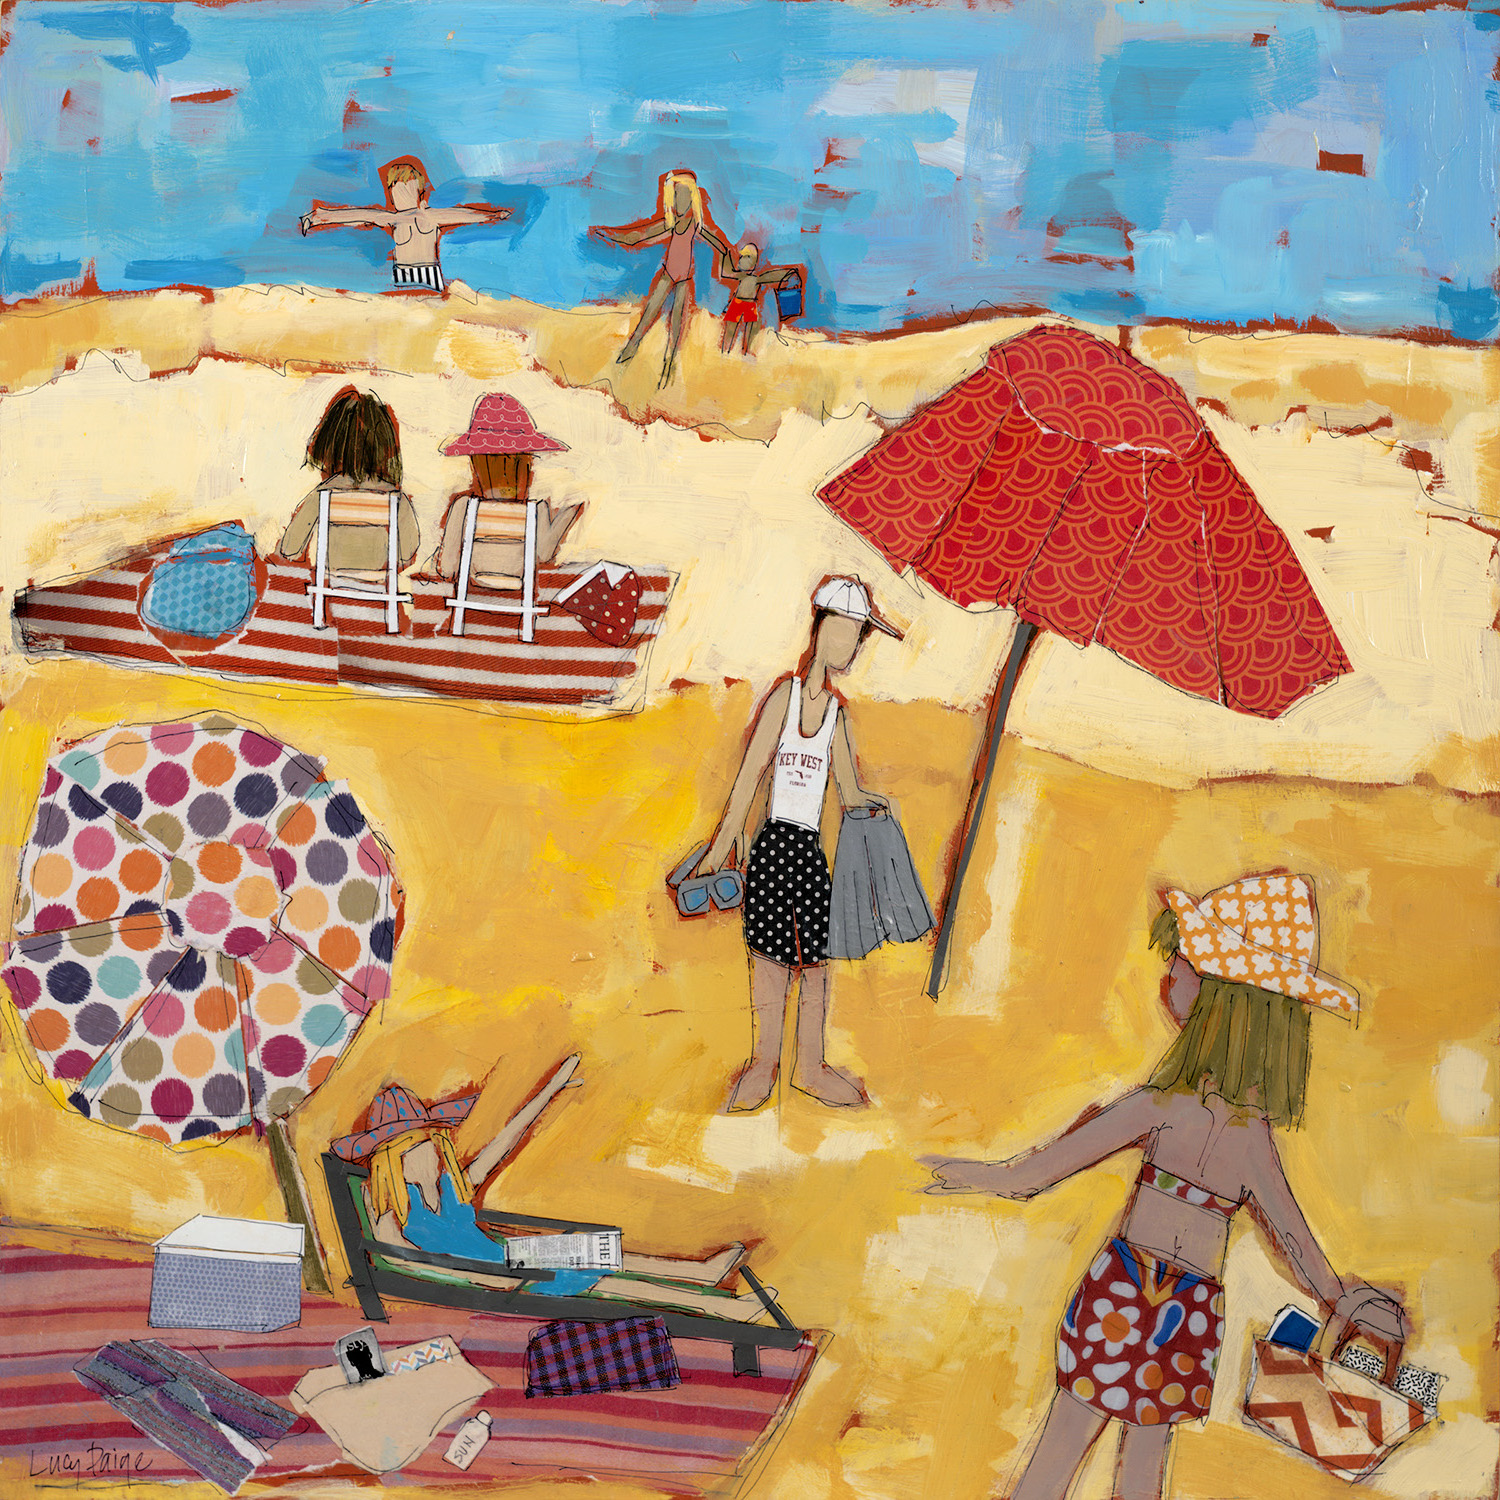 lucy paige artist key west beach day series collage Meet Me At The Beach .jpg